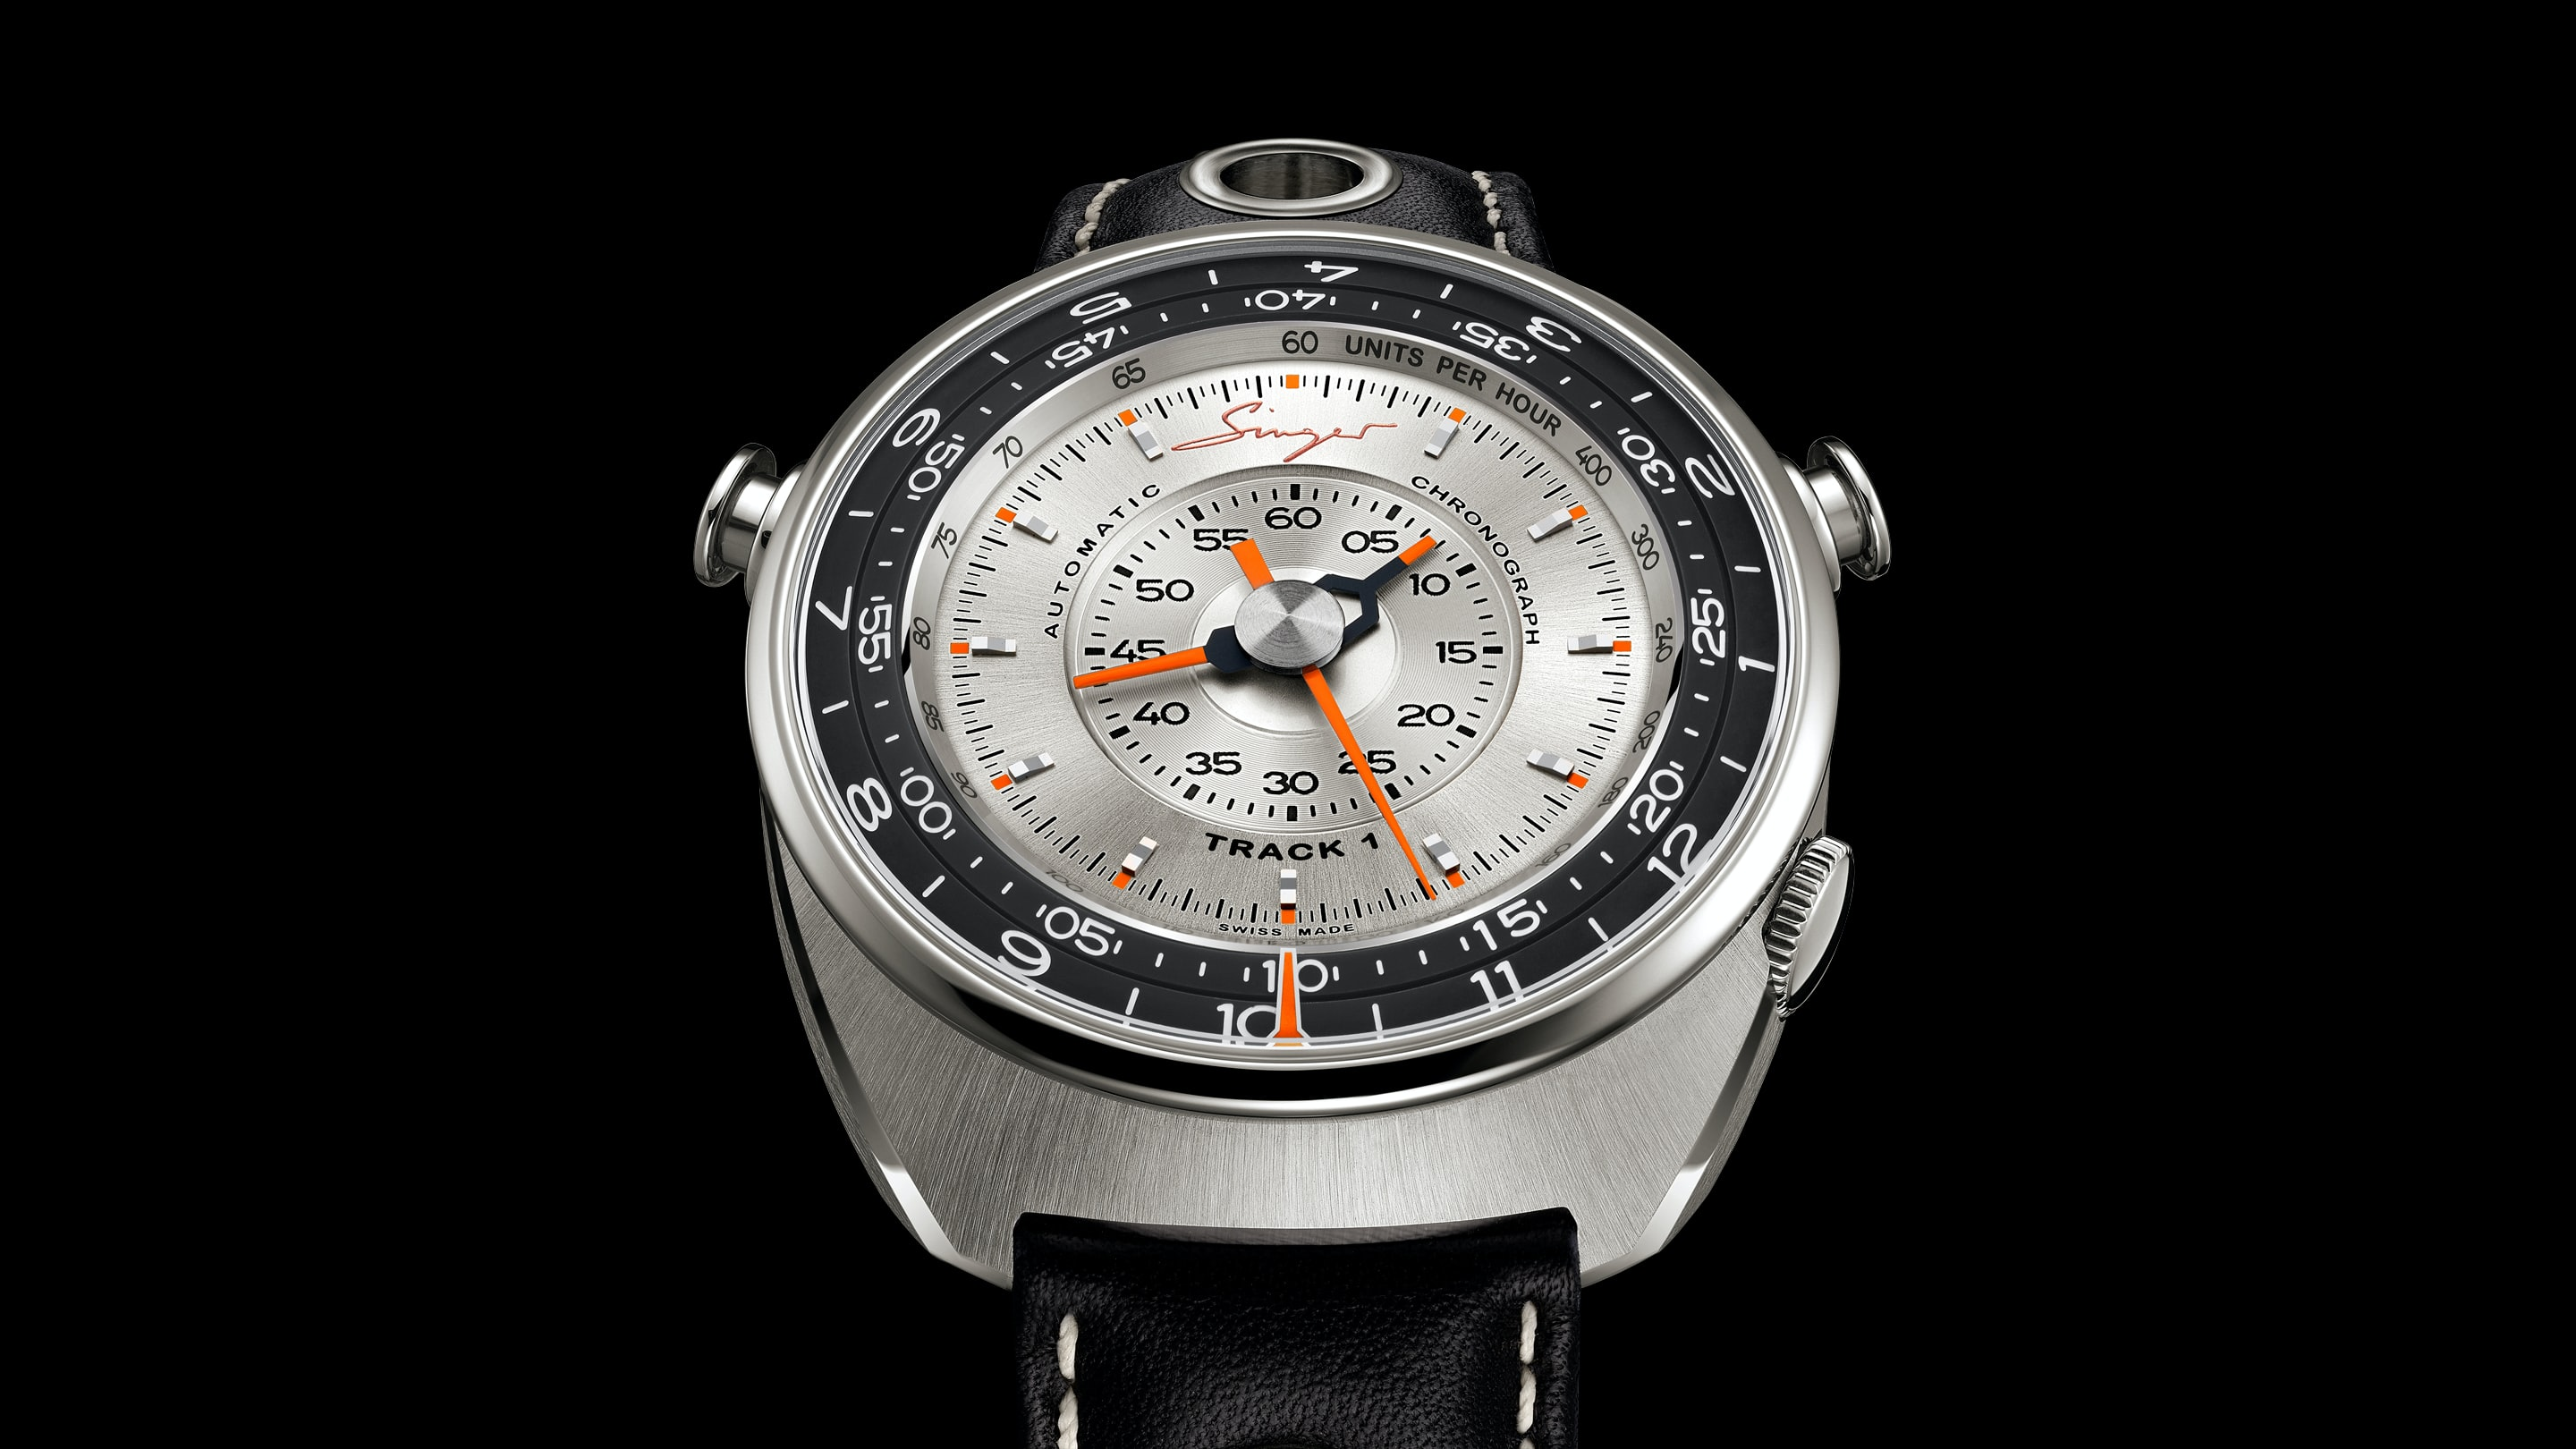 Singer hero.jpg?ixlib=rails 1.1 Introducing: The Singer Track1 Chronograph, Featuring The AgenGraphe Caliber By Jean-Marc Wiederrecht Introducing: The Singer Track1 Chronograph, Featuring The AgenGraphe Caliber By Jean-Marc Wiederrecht singer hero